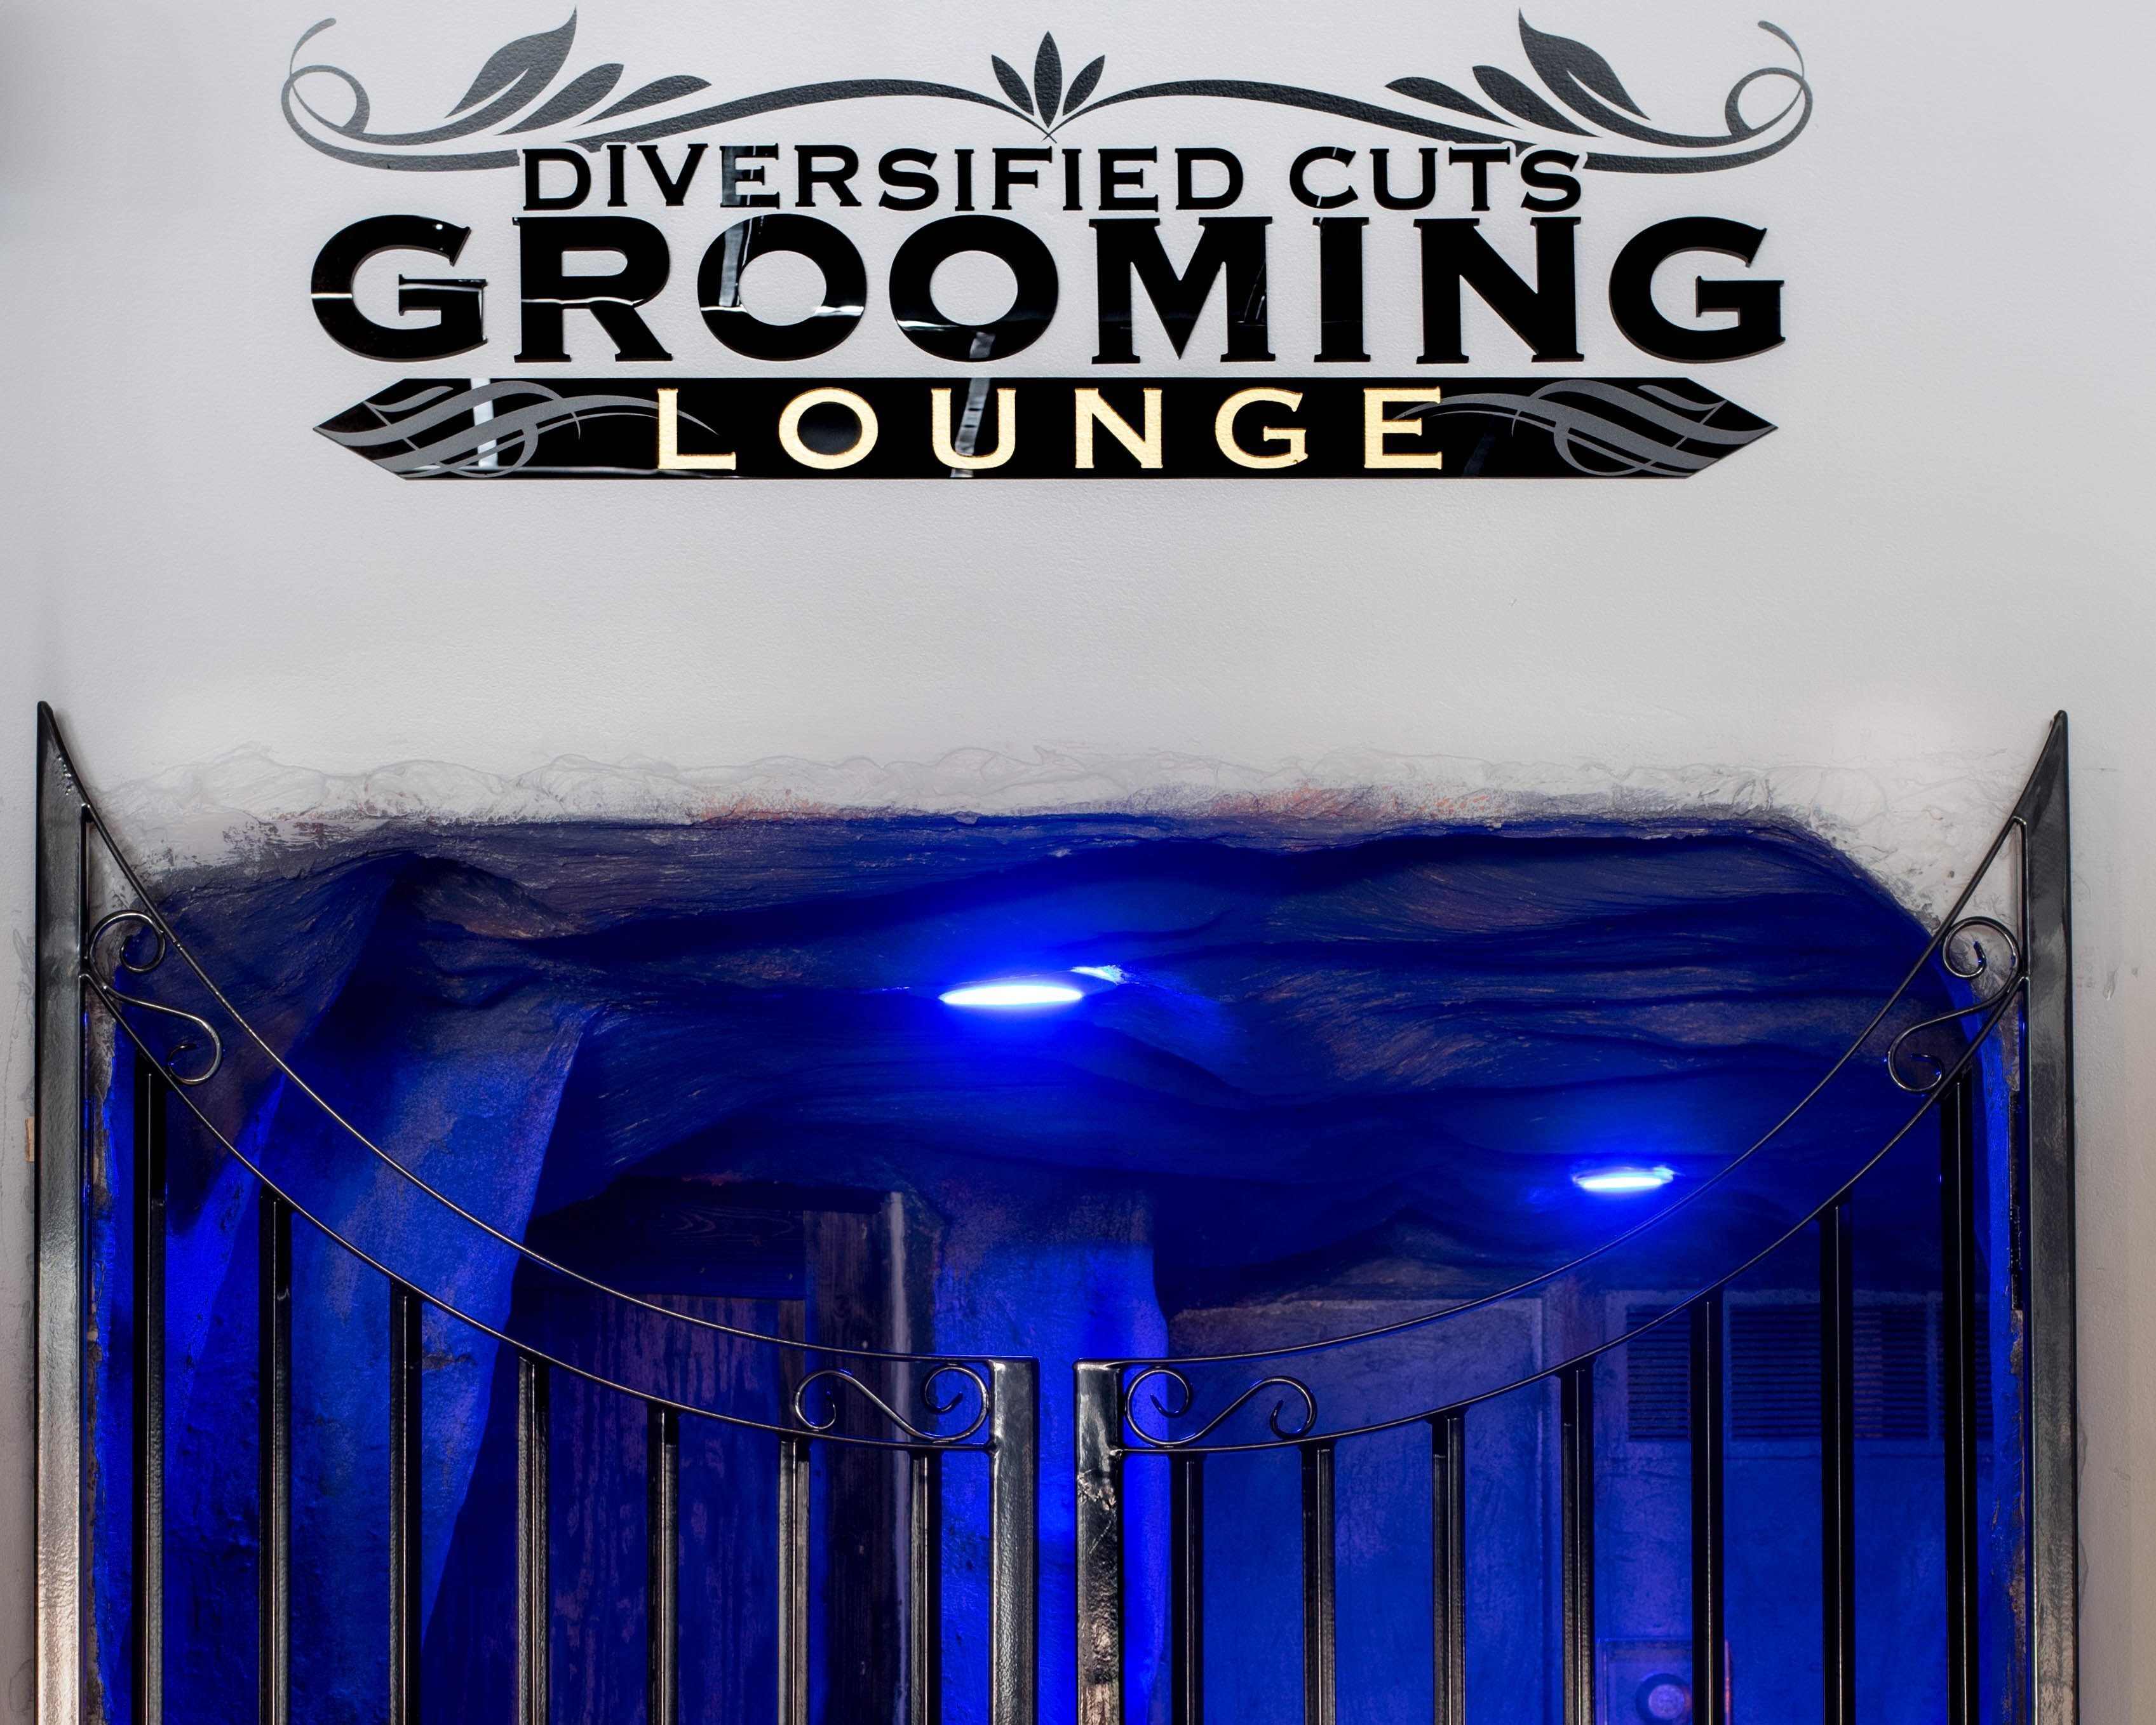 Diversided Cuts Grooming Lounge